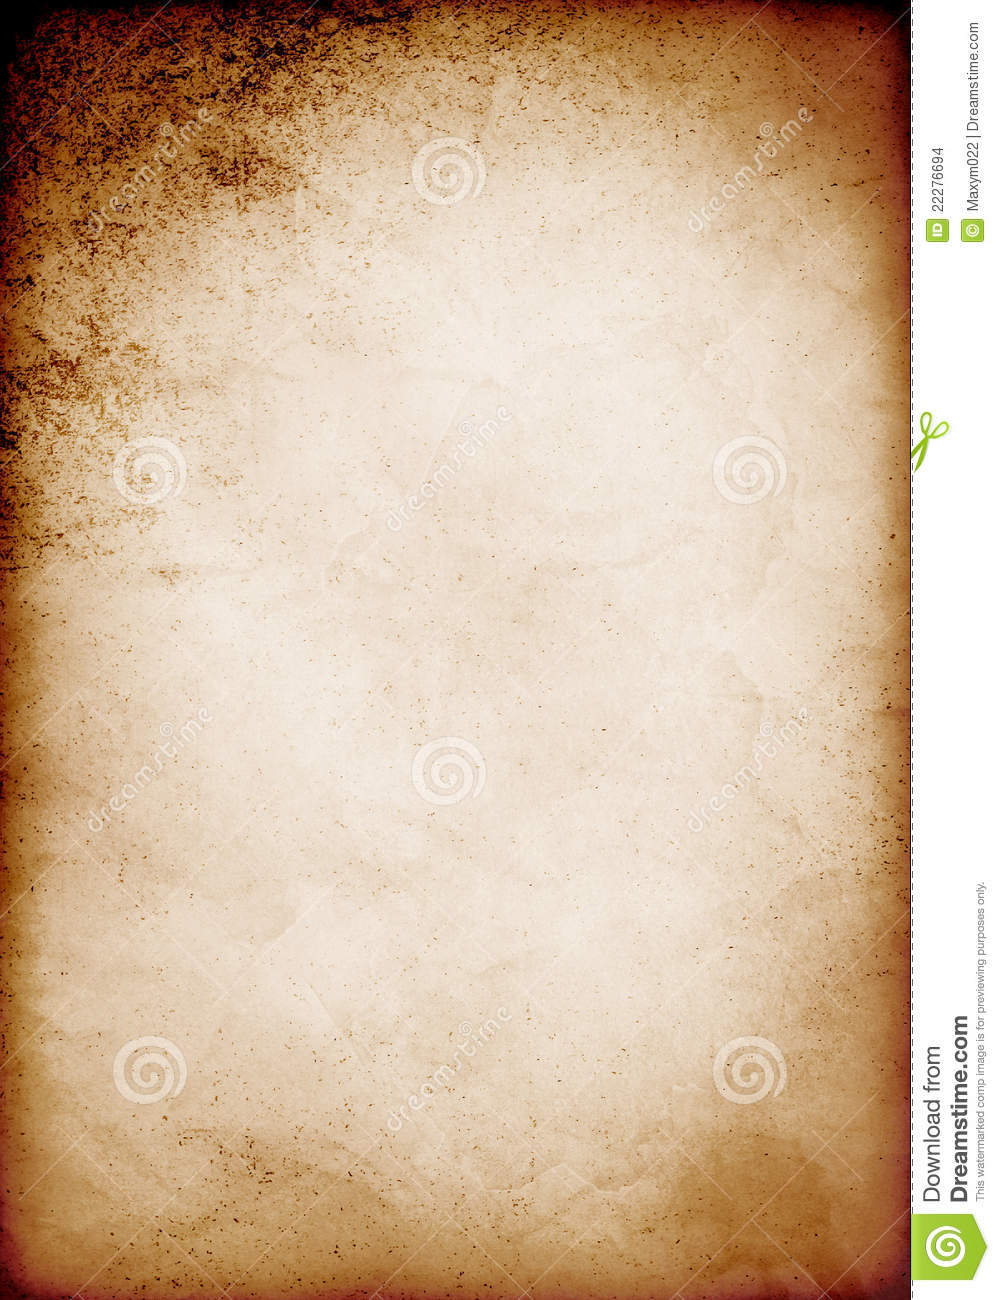 Old Paper Template Stock Images - Image: 22276694